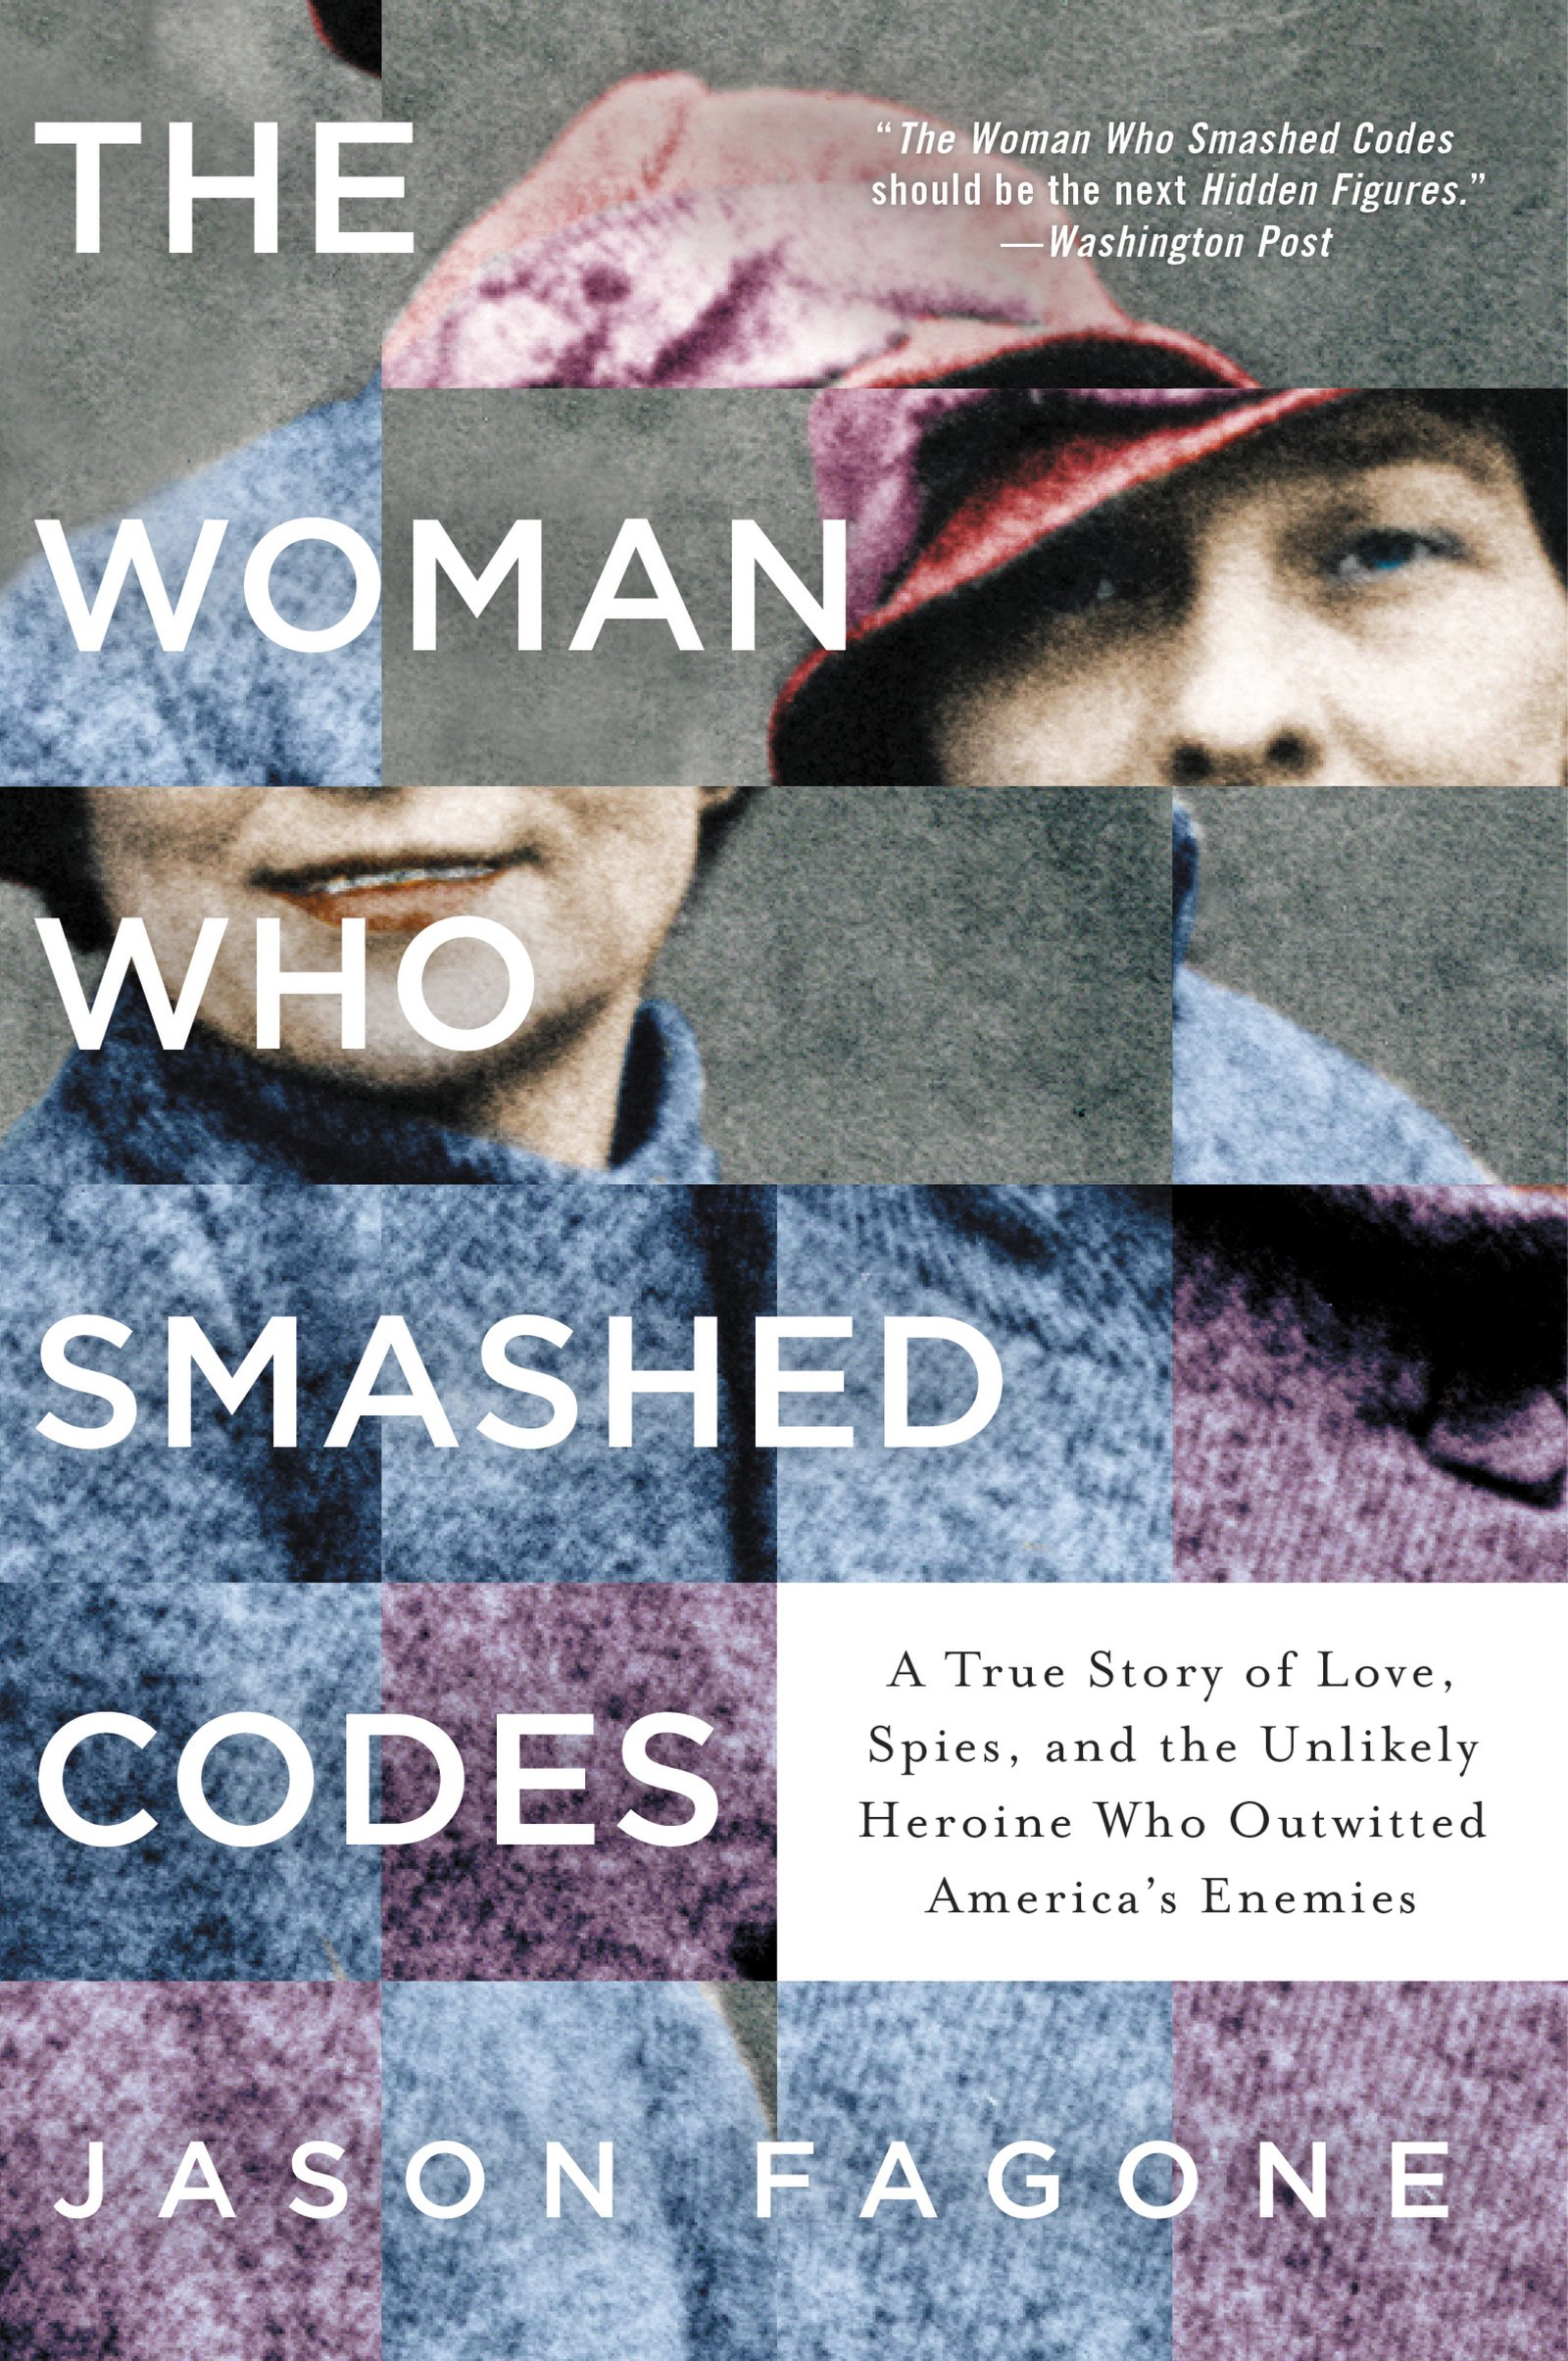 Image OfThe Woman Who Smashed Codes: A True Story Of Love, Spies, And The Unlikely Heroine Who Outwitted America's Enemies